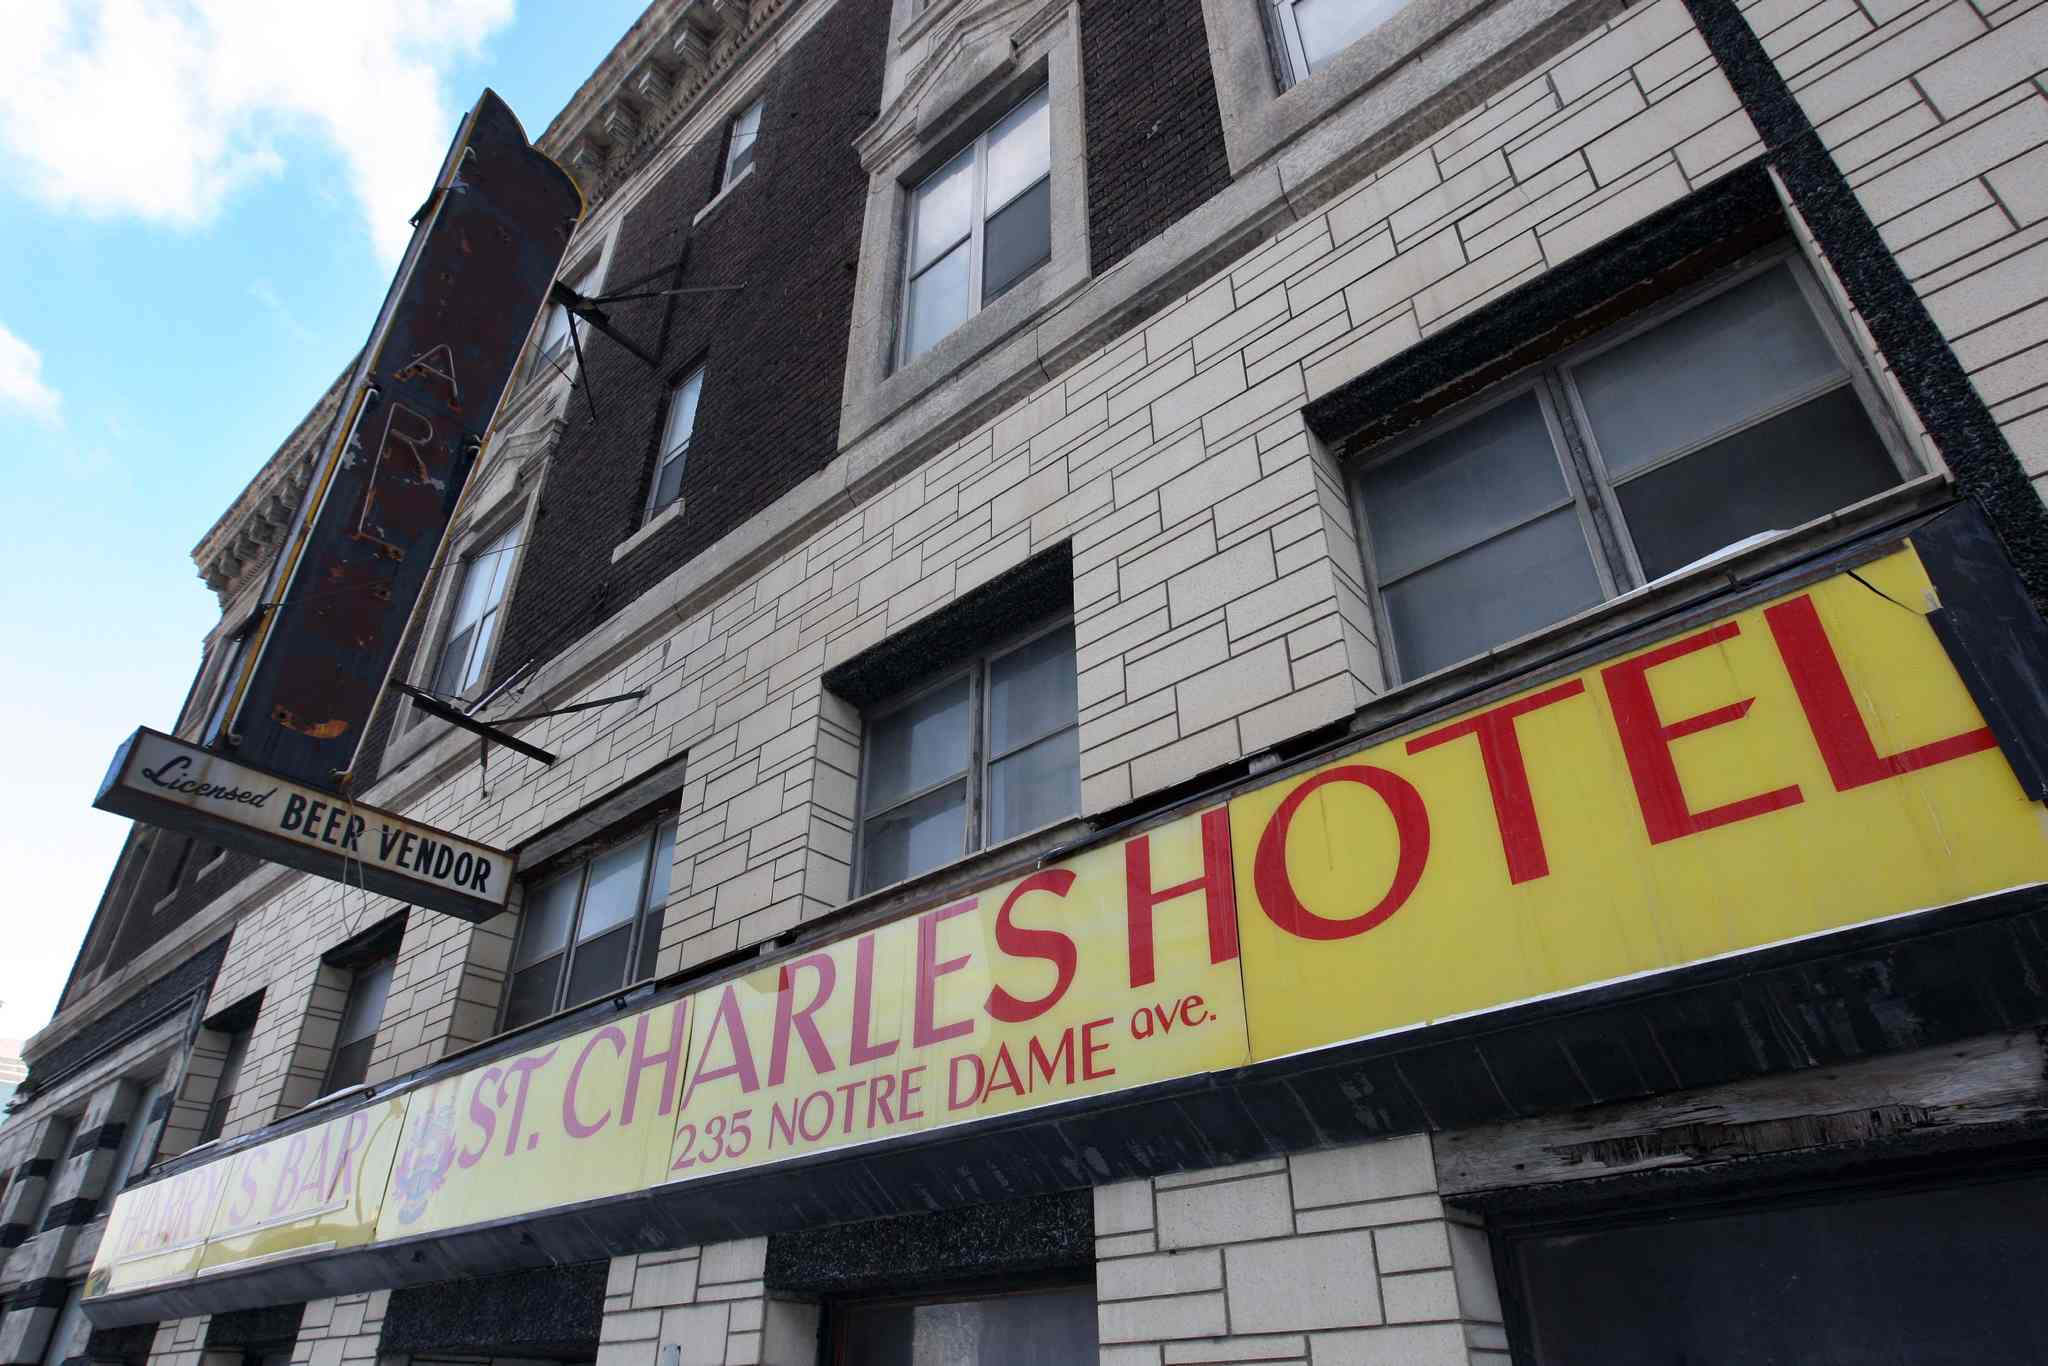 Owner Ken Zaifman bought the hotel in 2005 and later pledged to turn it into a boutique hotel. Now he wants to demolish it.